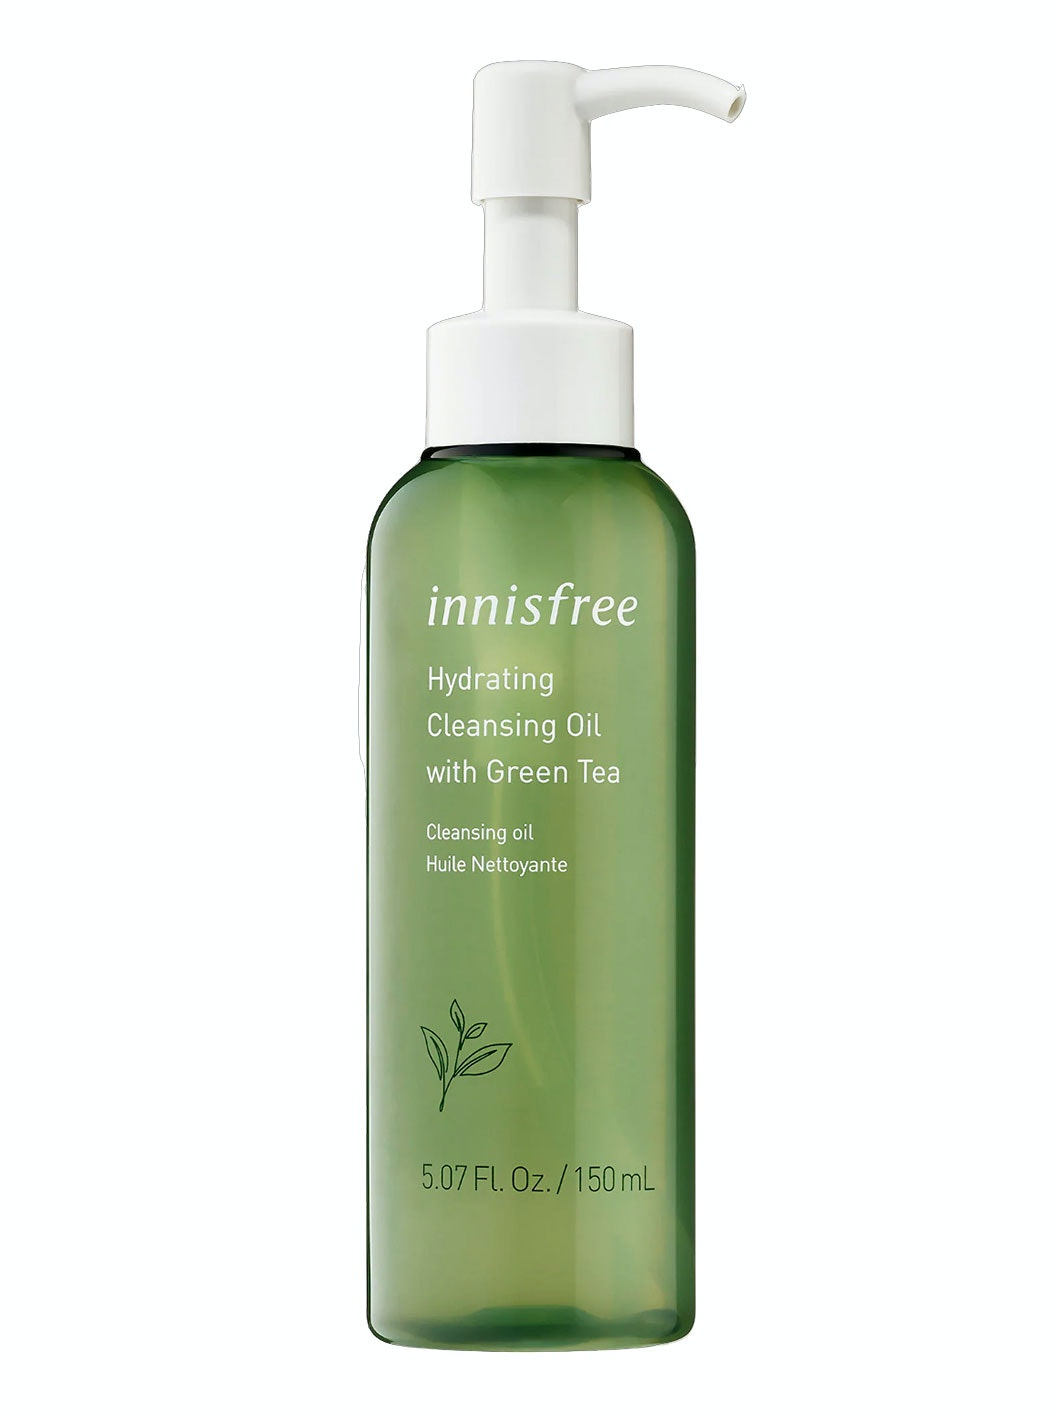 Innisfree Hydrating Cleansing Oil